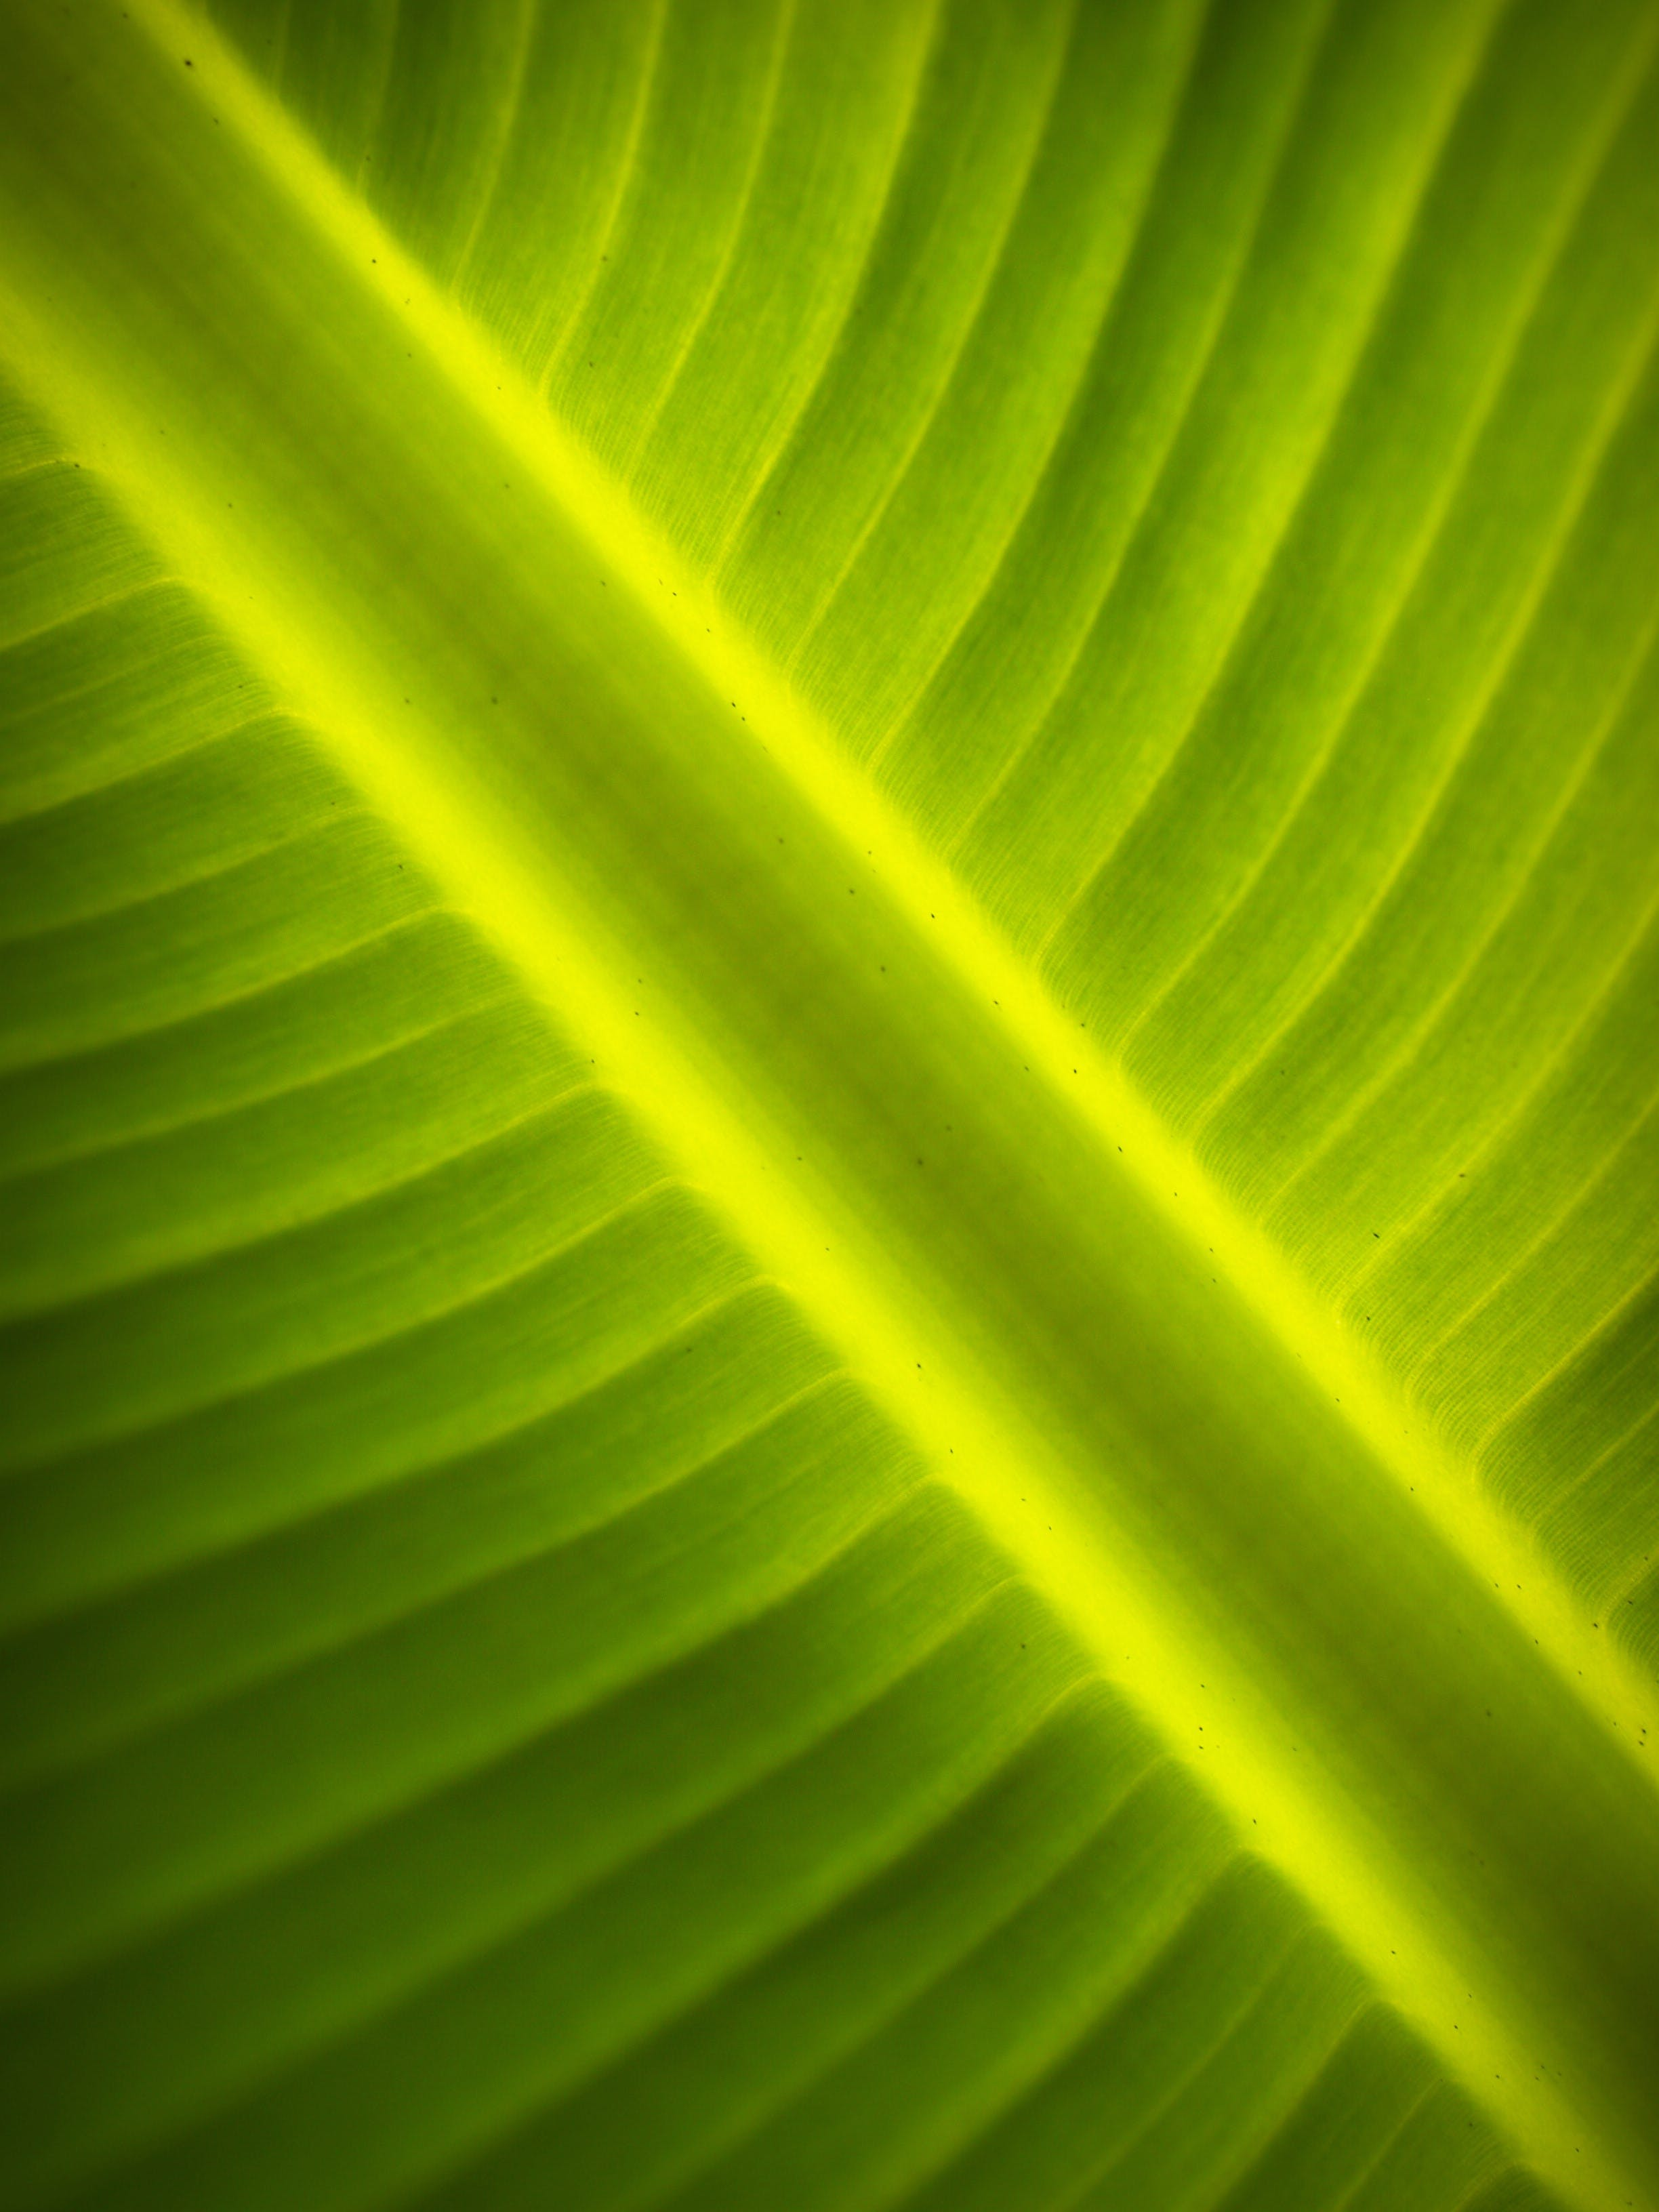 Free stock photo of nature, leaf, blur, lines